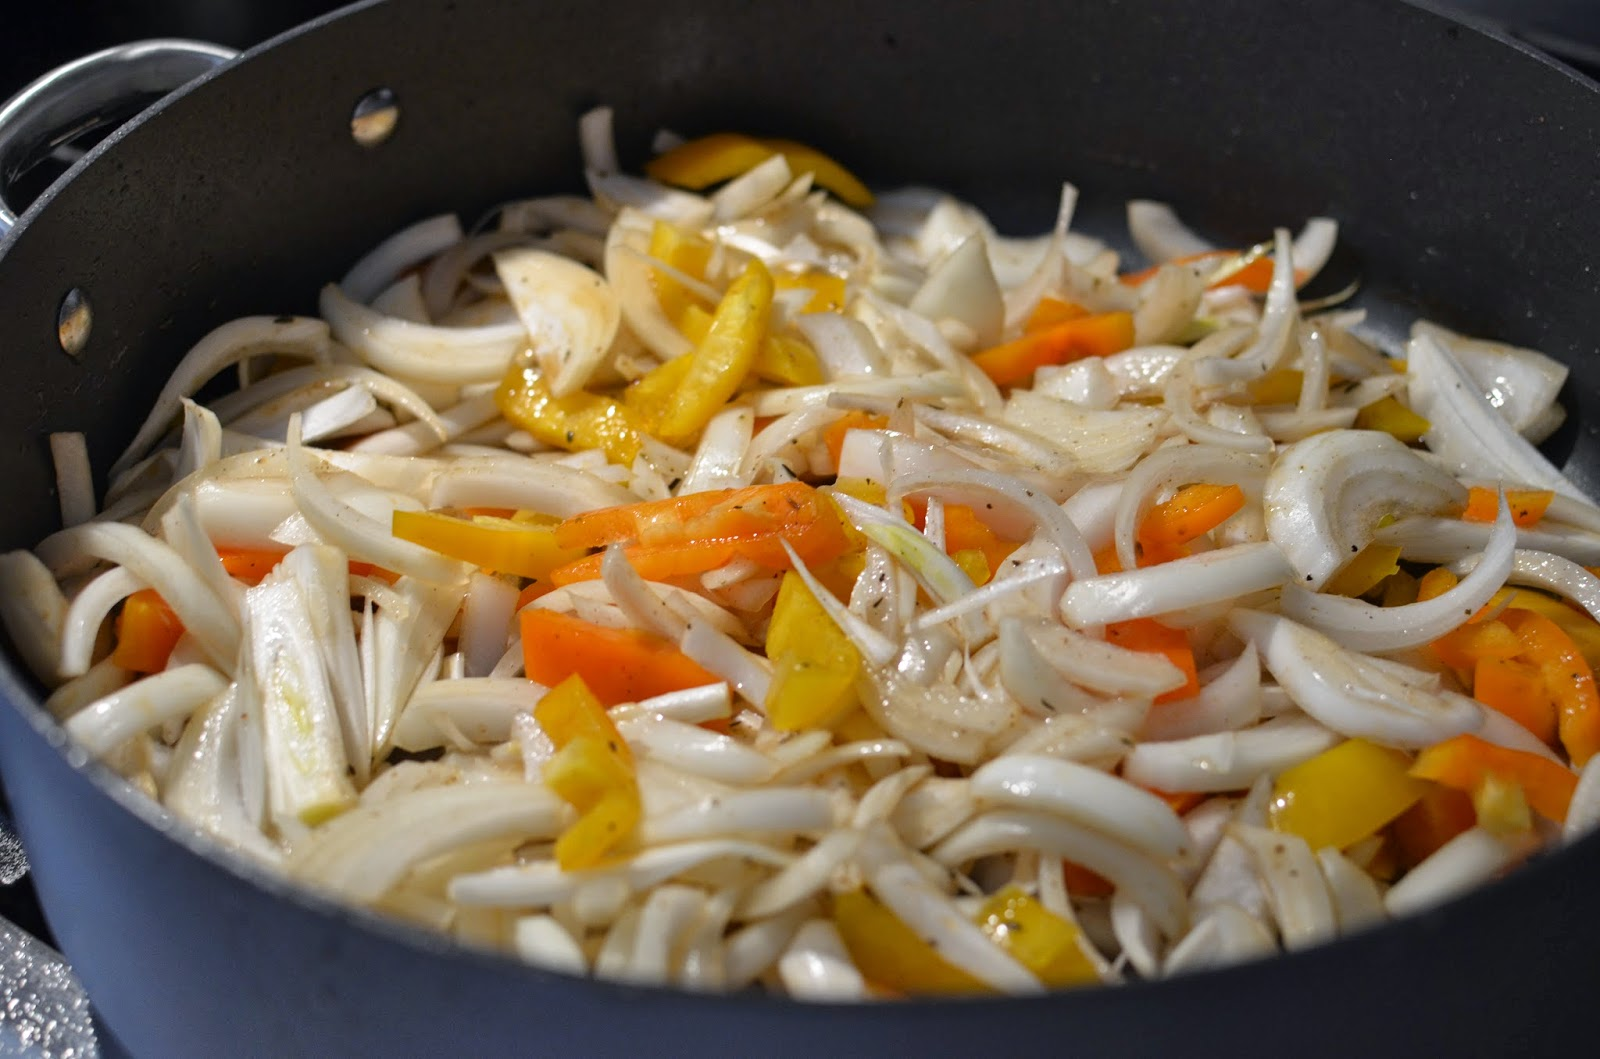 Add a mountain of sliced onions and peppers. Cook, stirring occasionally, for 8-10 minutes.